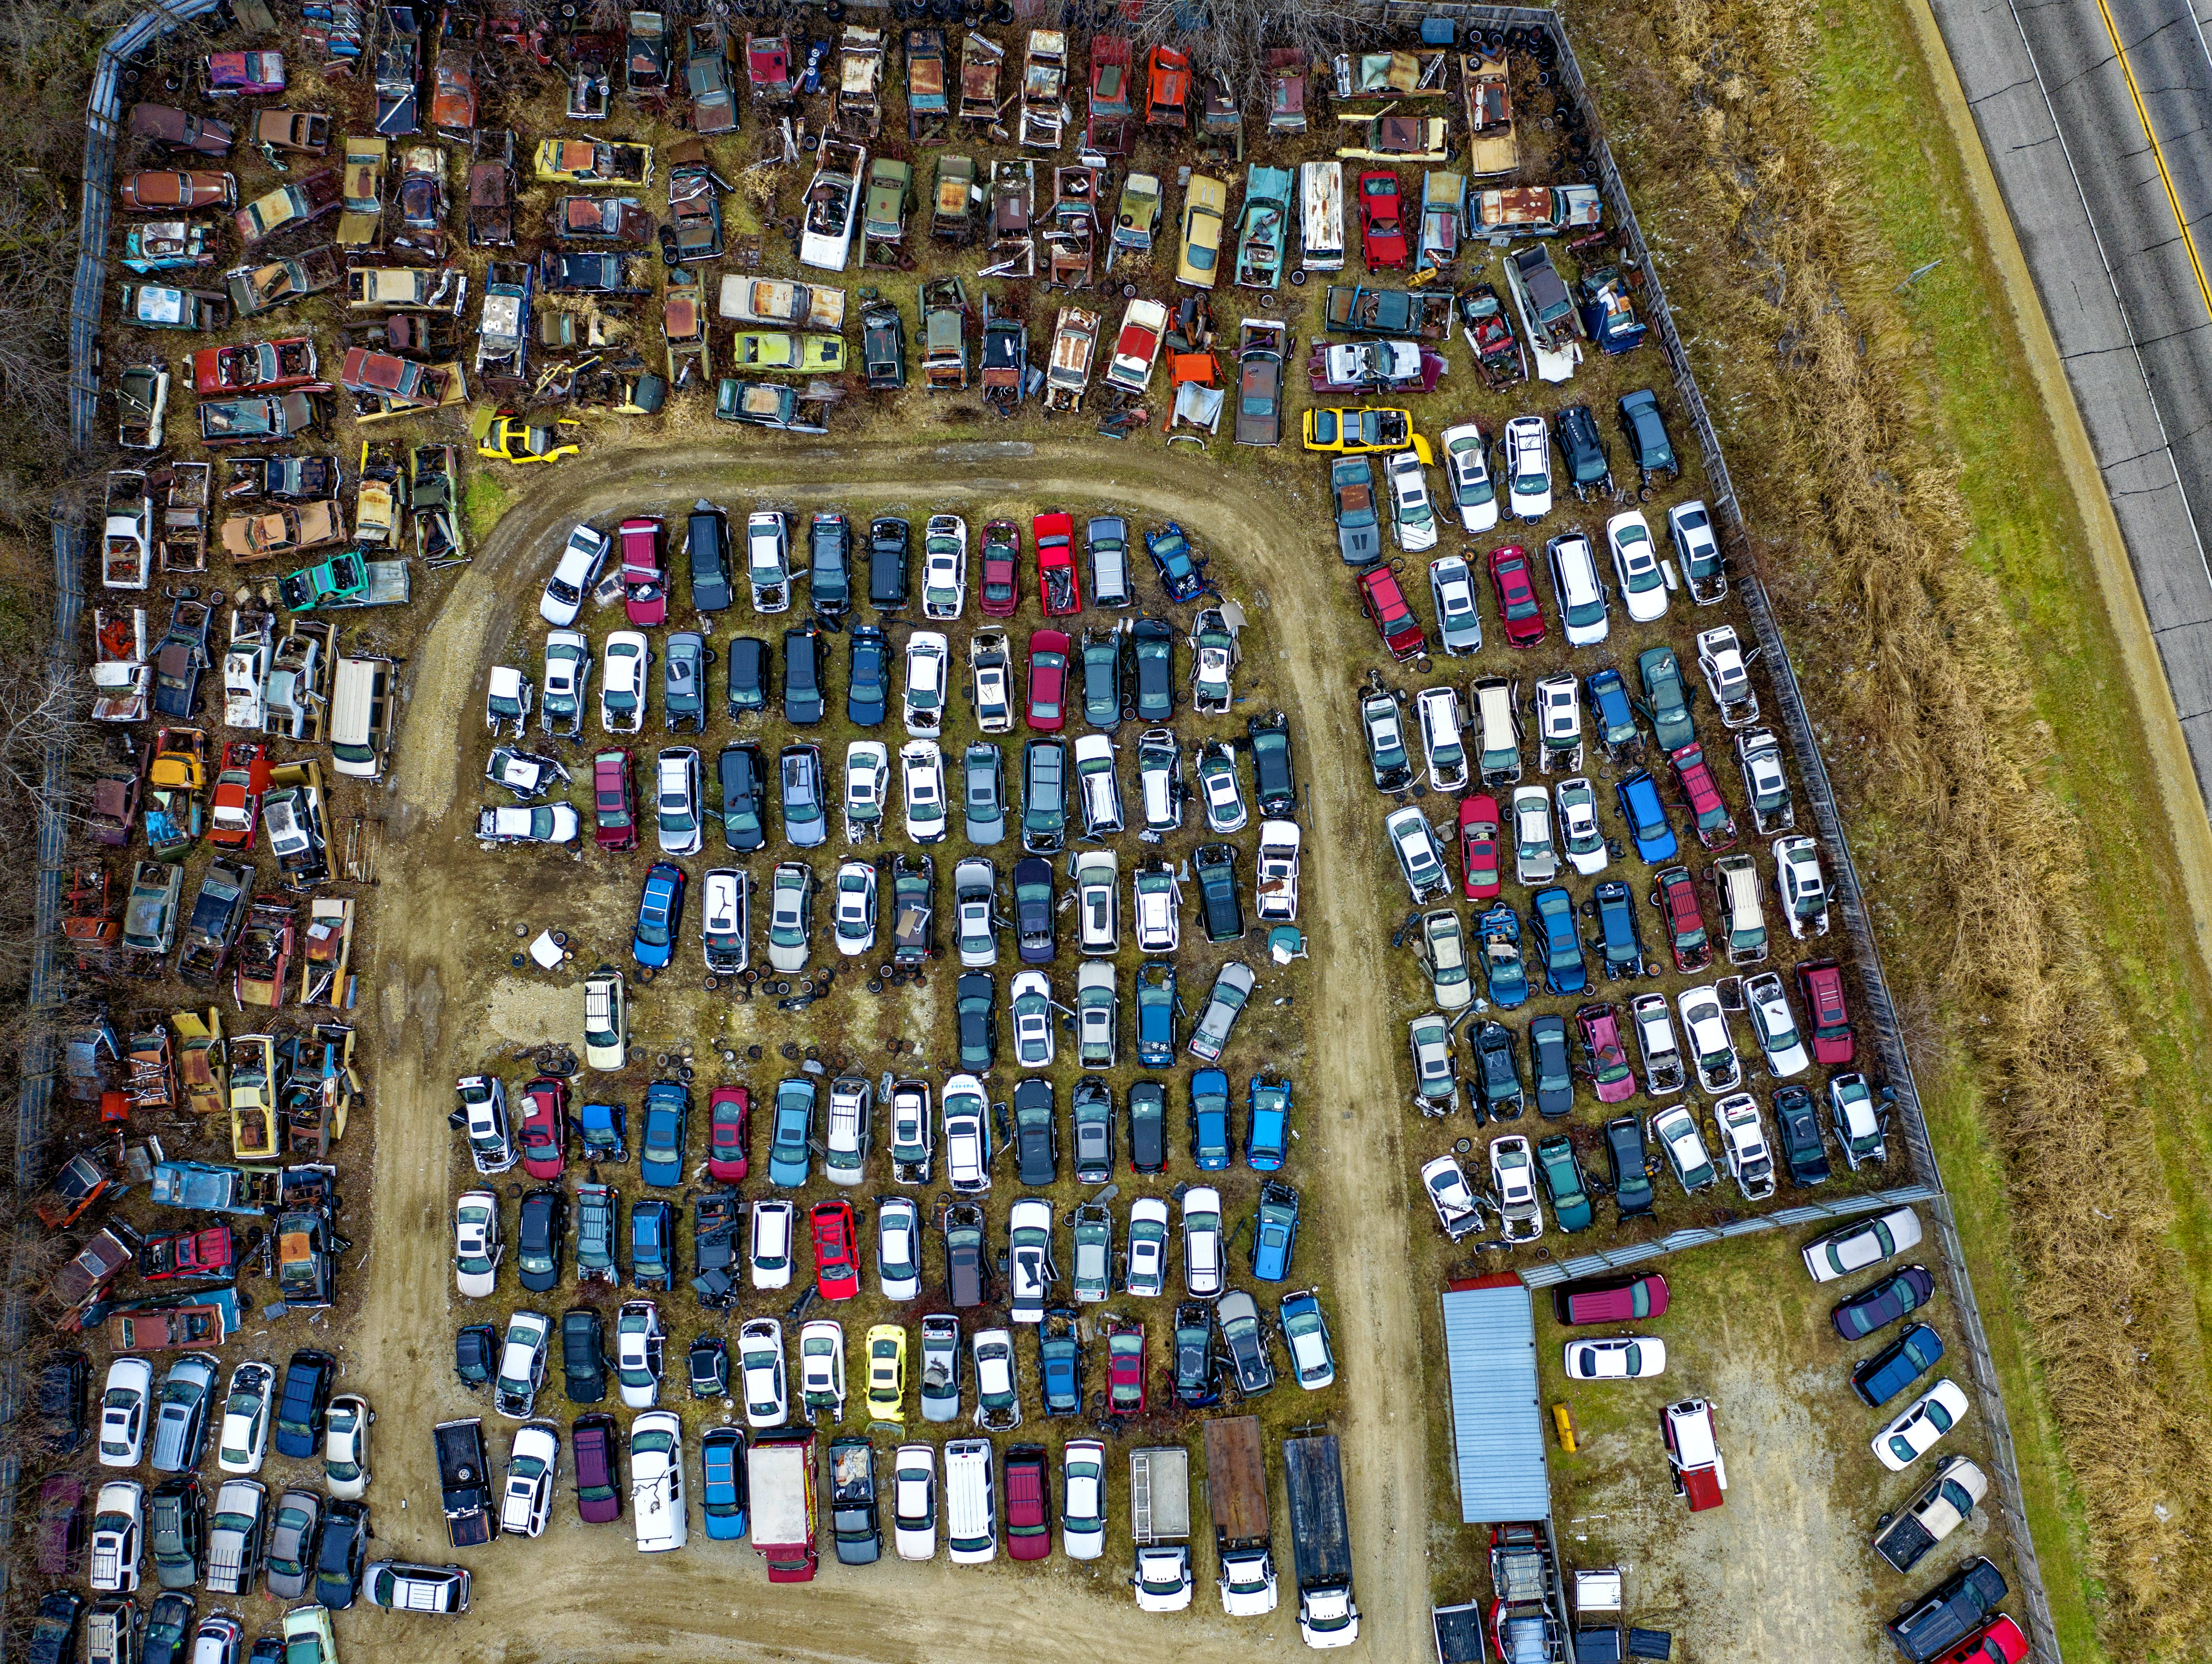 Top View Photo of Junkyard